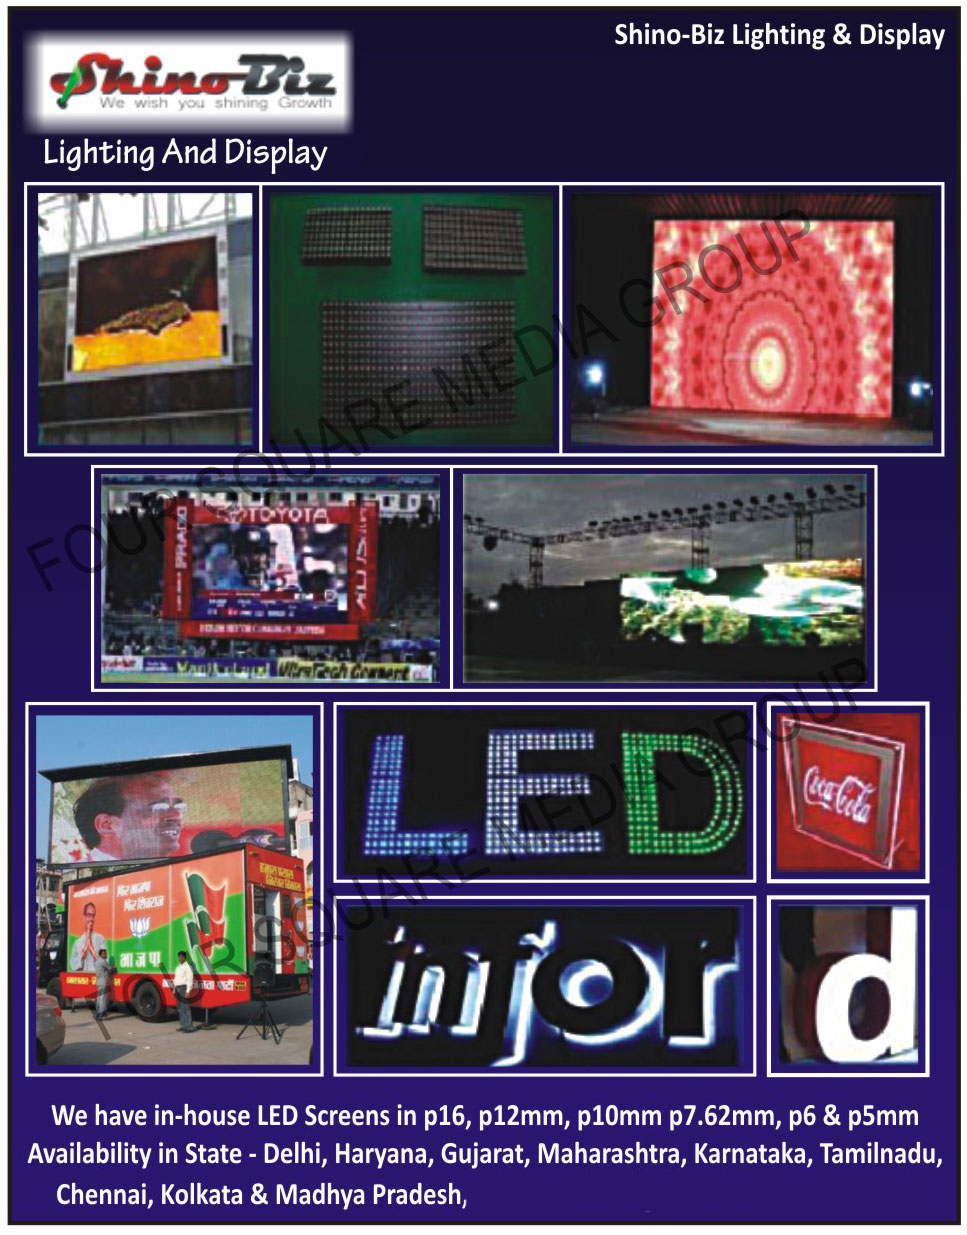 LED Screens, LED Displays, LED Signboard,Indoor Led Screen, Outdoor Led Screen, Signage, Mobile Van Led Screen